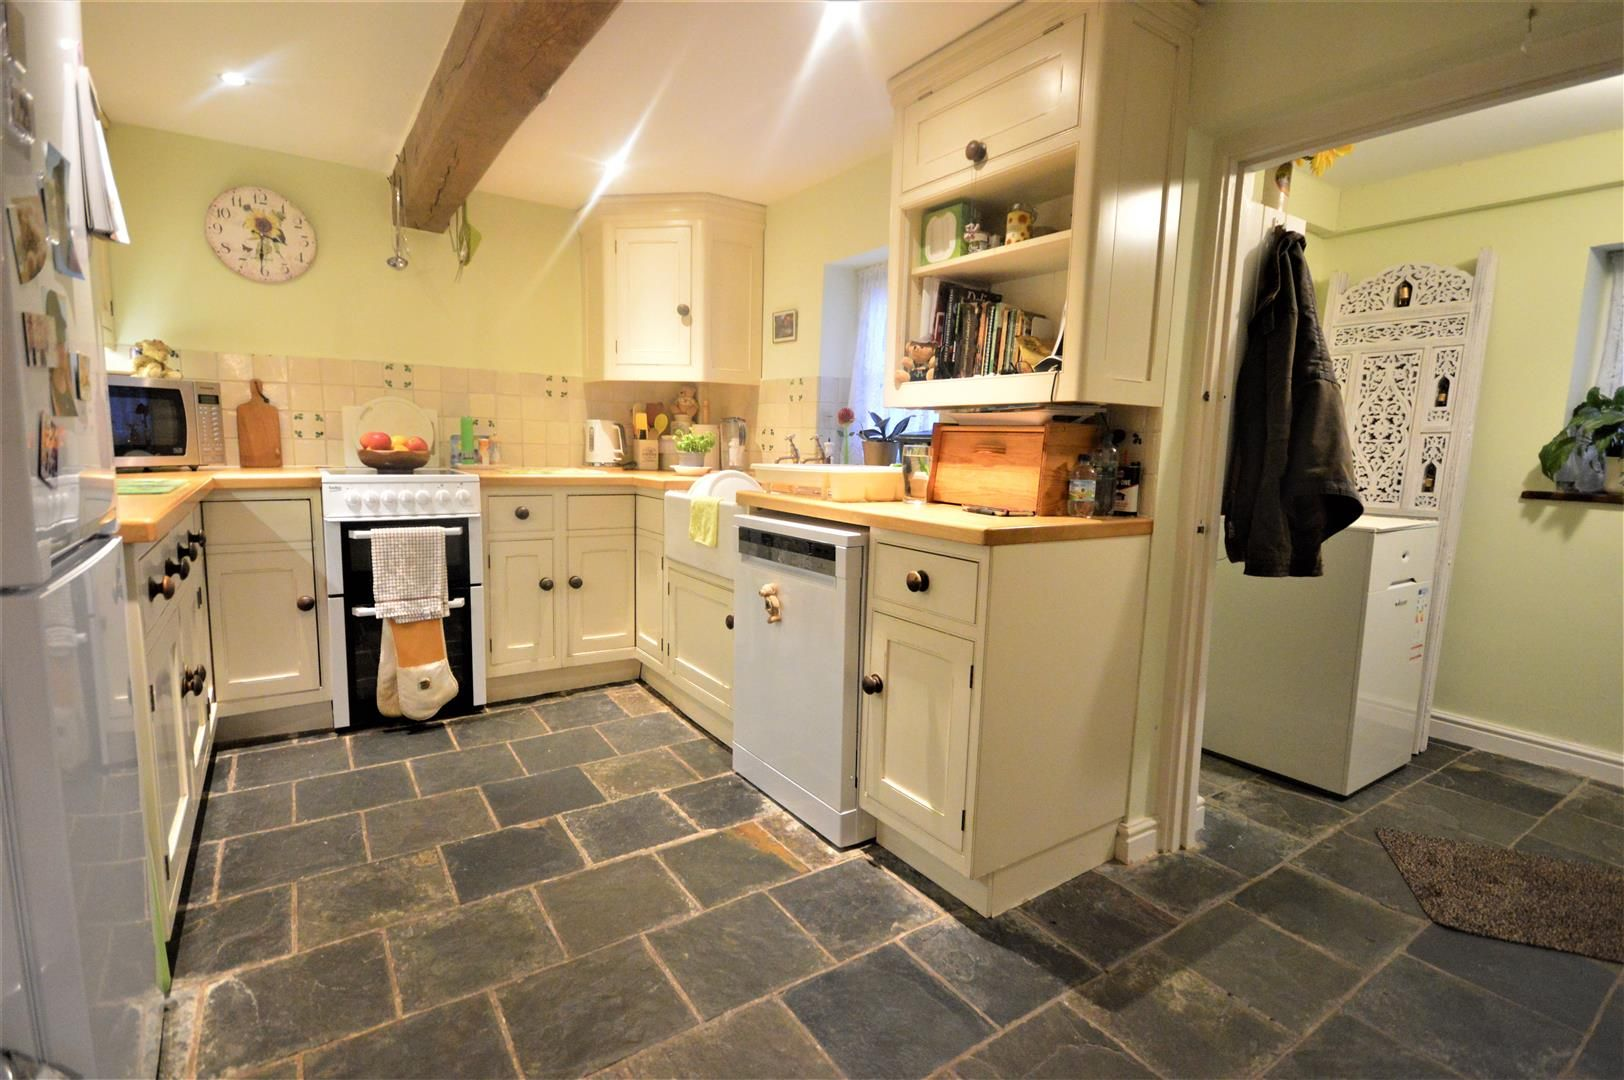 4 bed detached for sale in Dilwyn  - Property Image 4